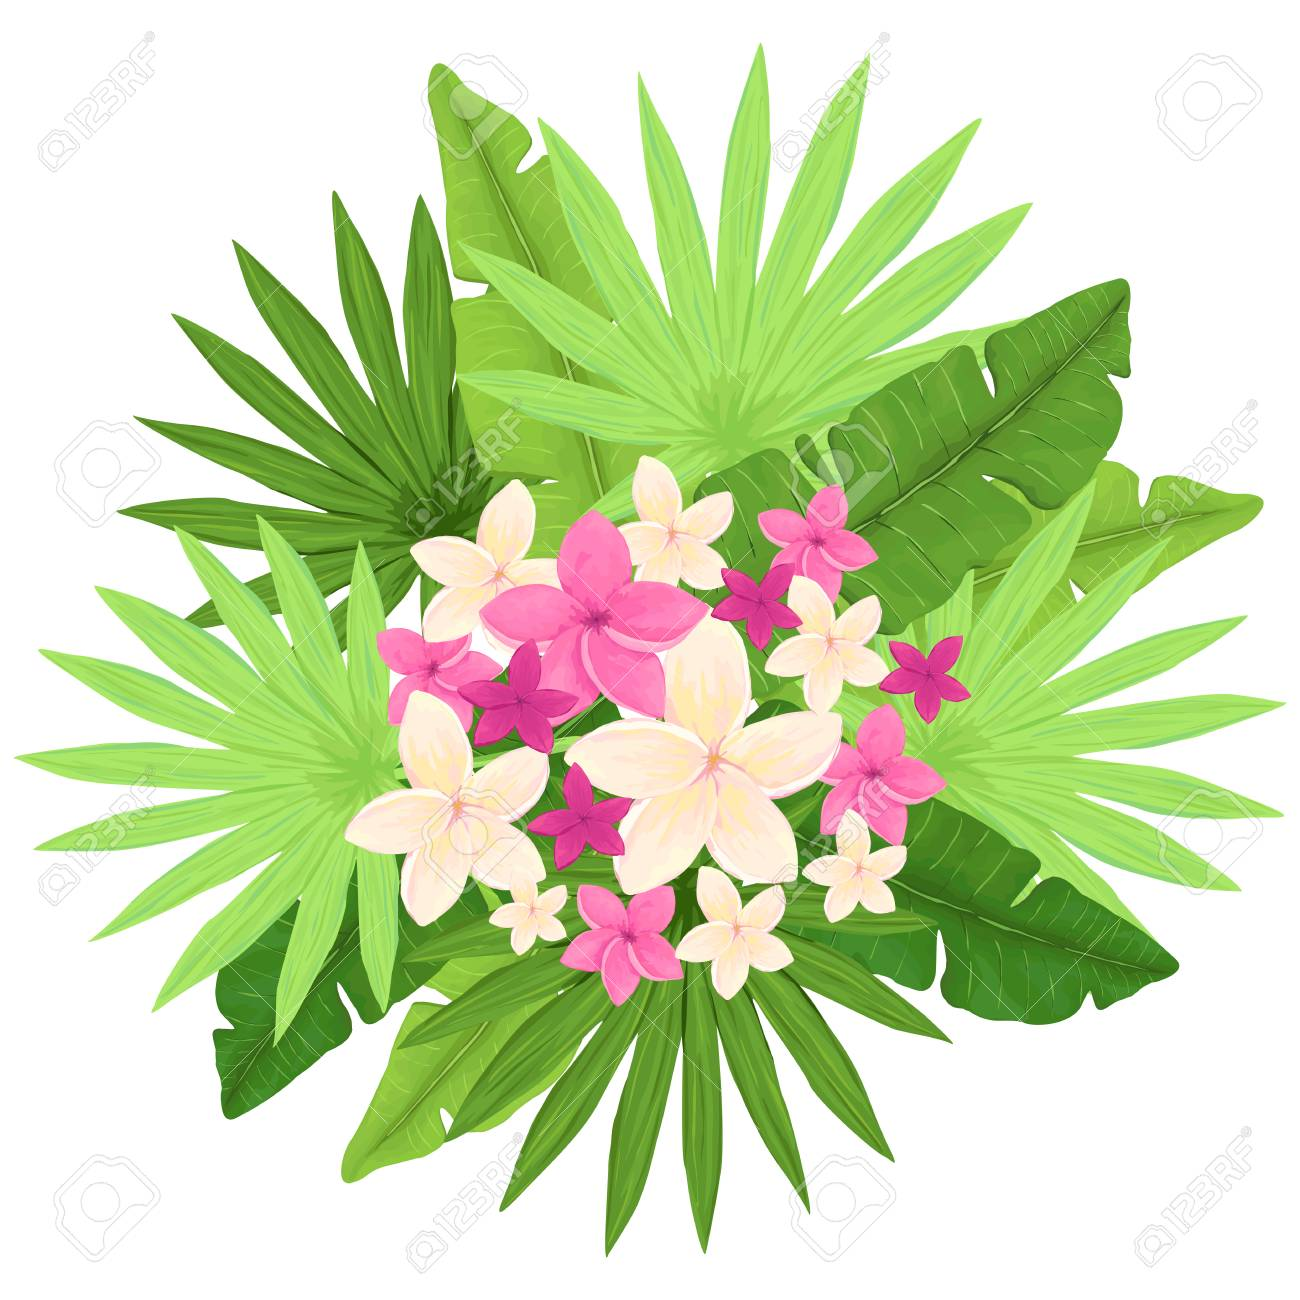 Tropical Bouquet With White And Pink Flowers And Palm Leaves Royalty Free Cliparts Vectors And Stock Illustration Image 82651036 Here's a collection of beautiful flower clipart including graphics of tropical blossoms, roses, wildflowers, lilies and many other floral images. tropical bouquet with white and pink flowers and palm leaves